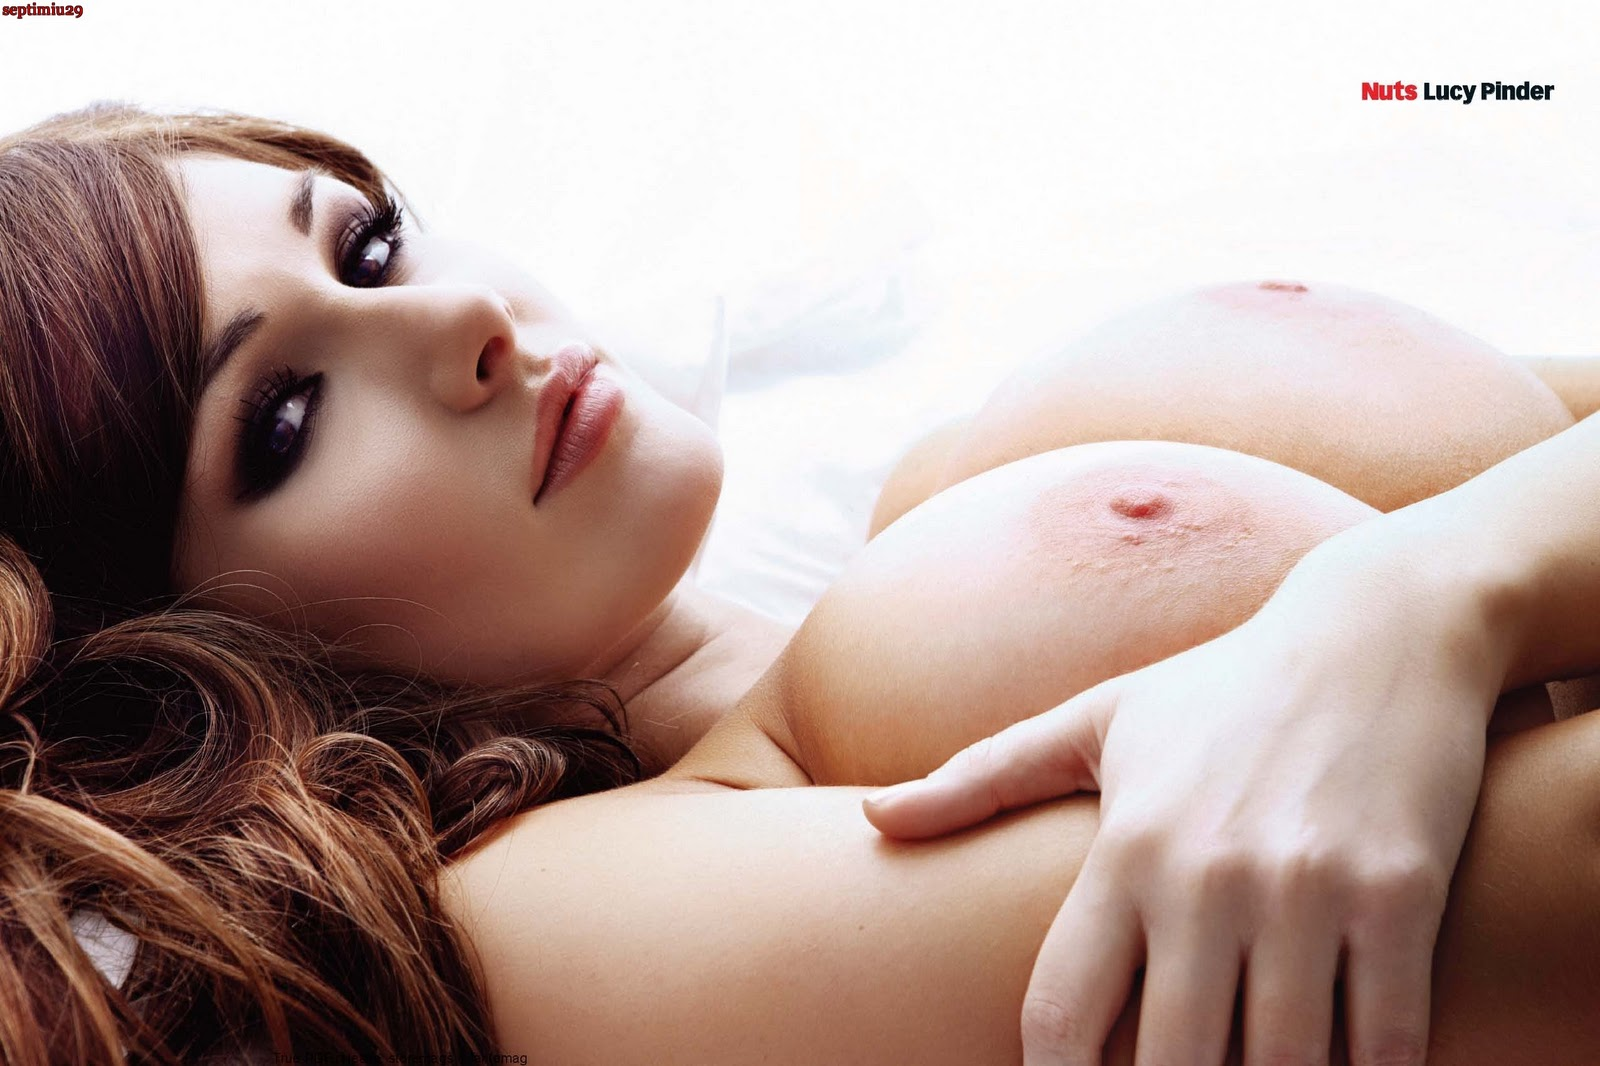 lucy pinder nuts magazine